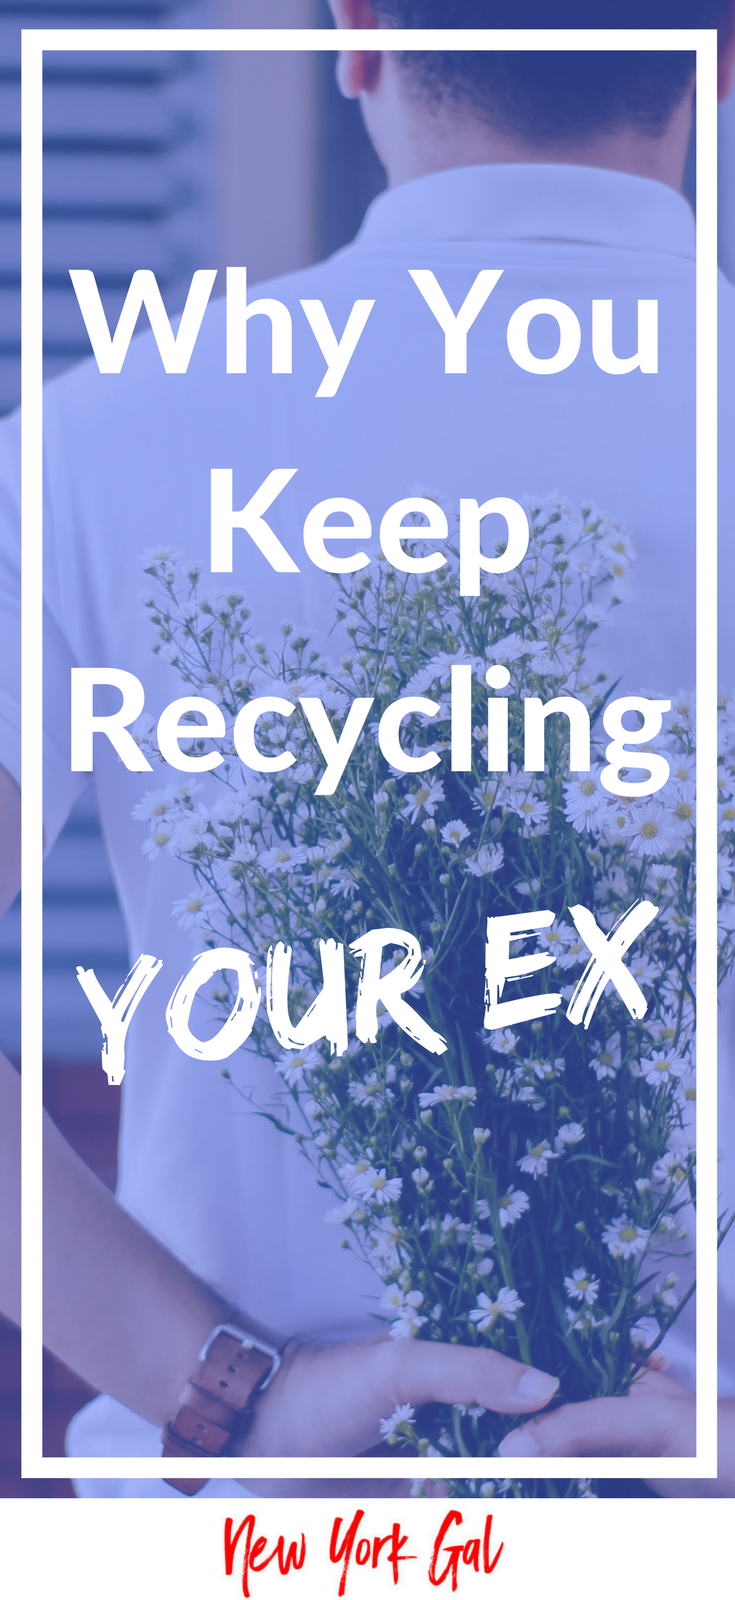 Not so Good for You? Why You Keep Recycling Your Ex (With images) | Relationship quotes, Dating ...